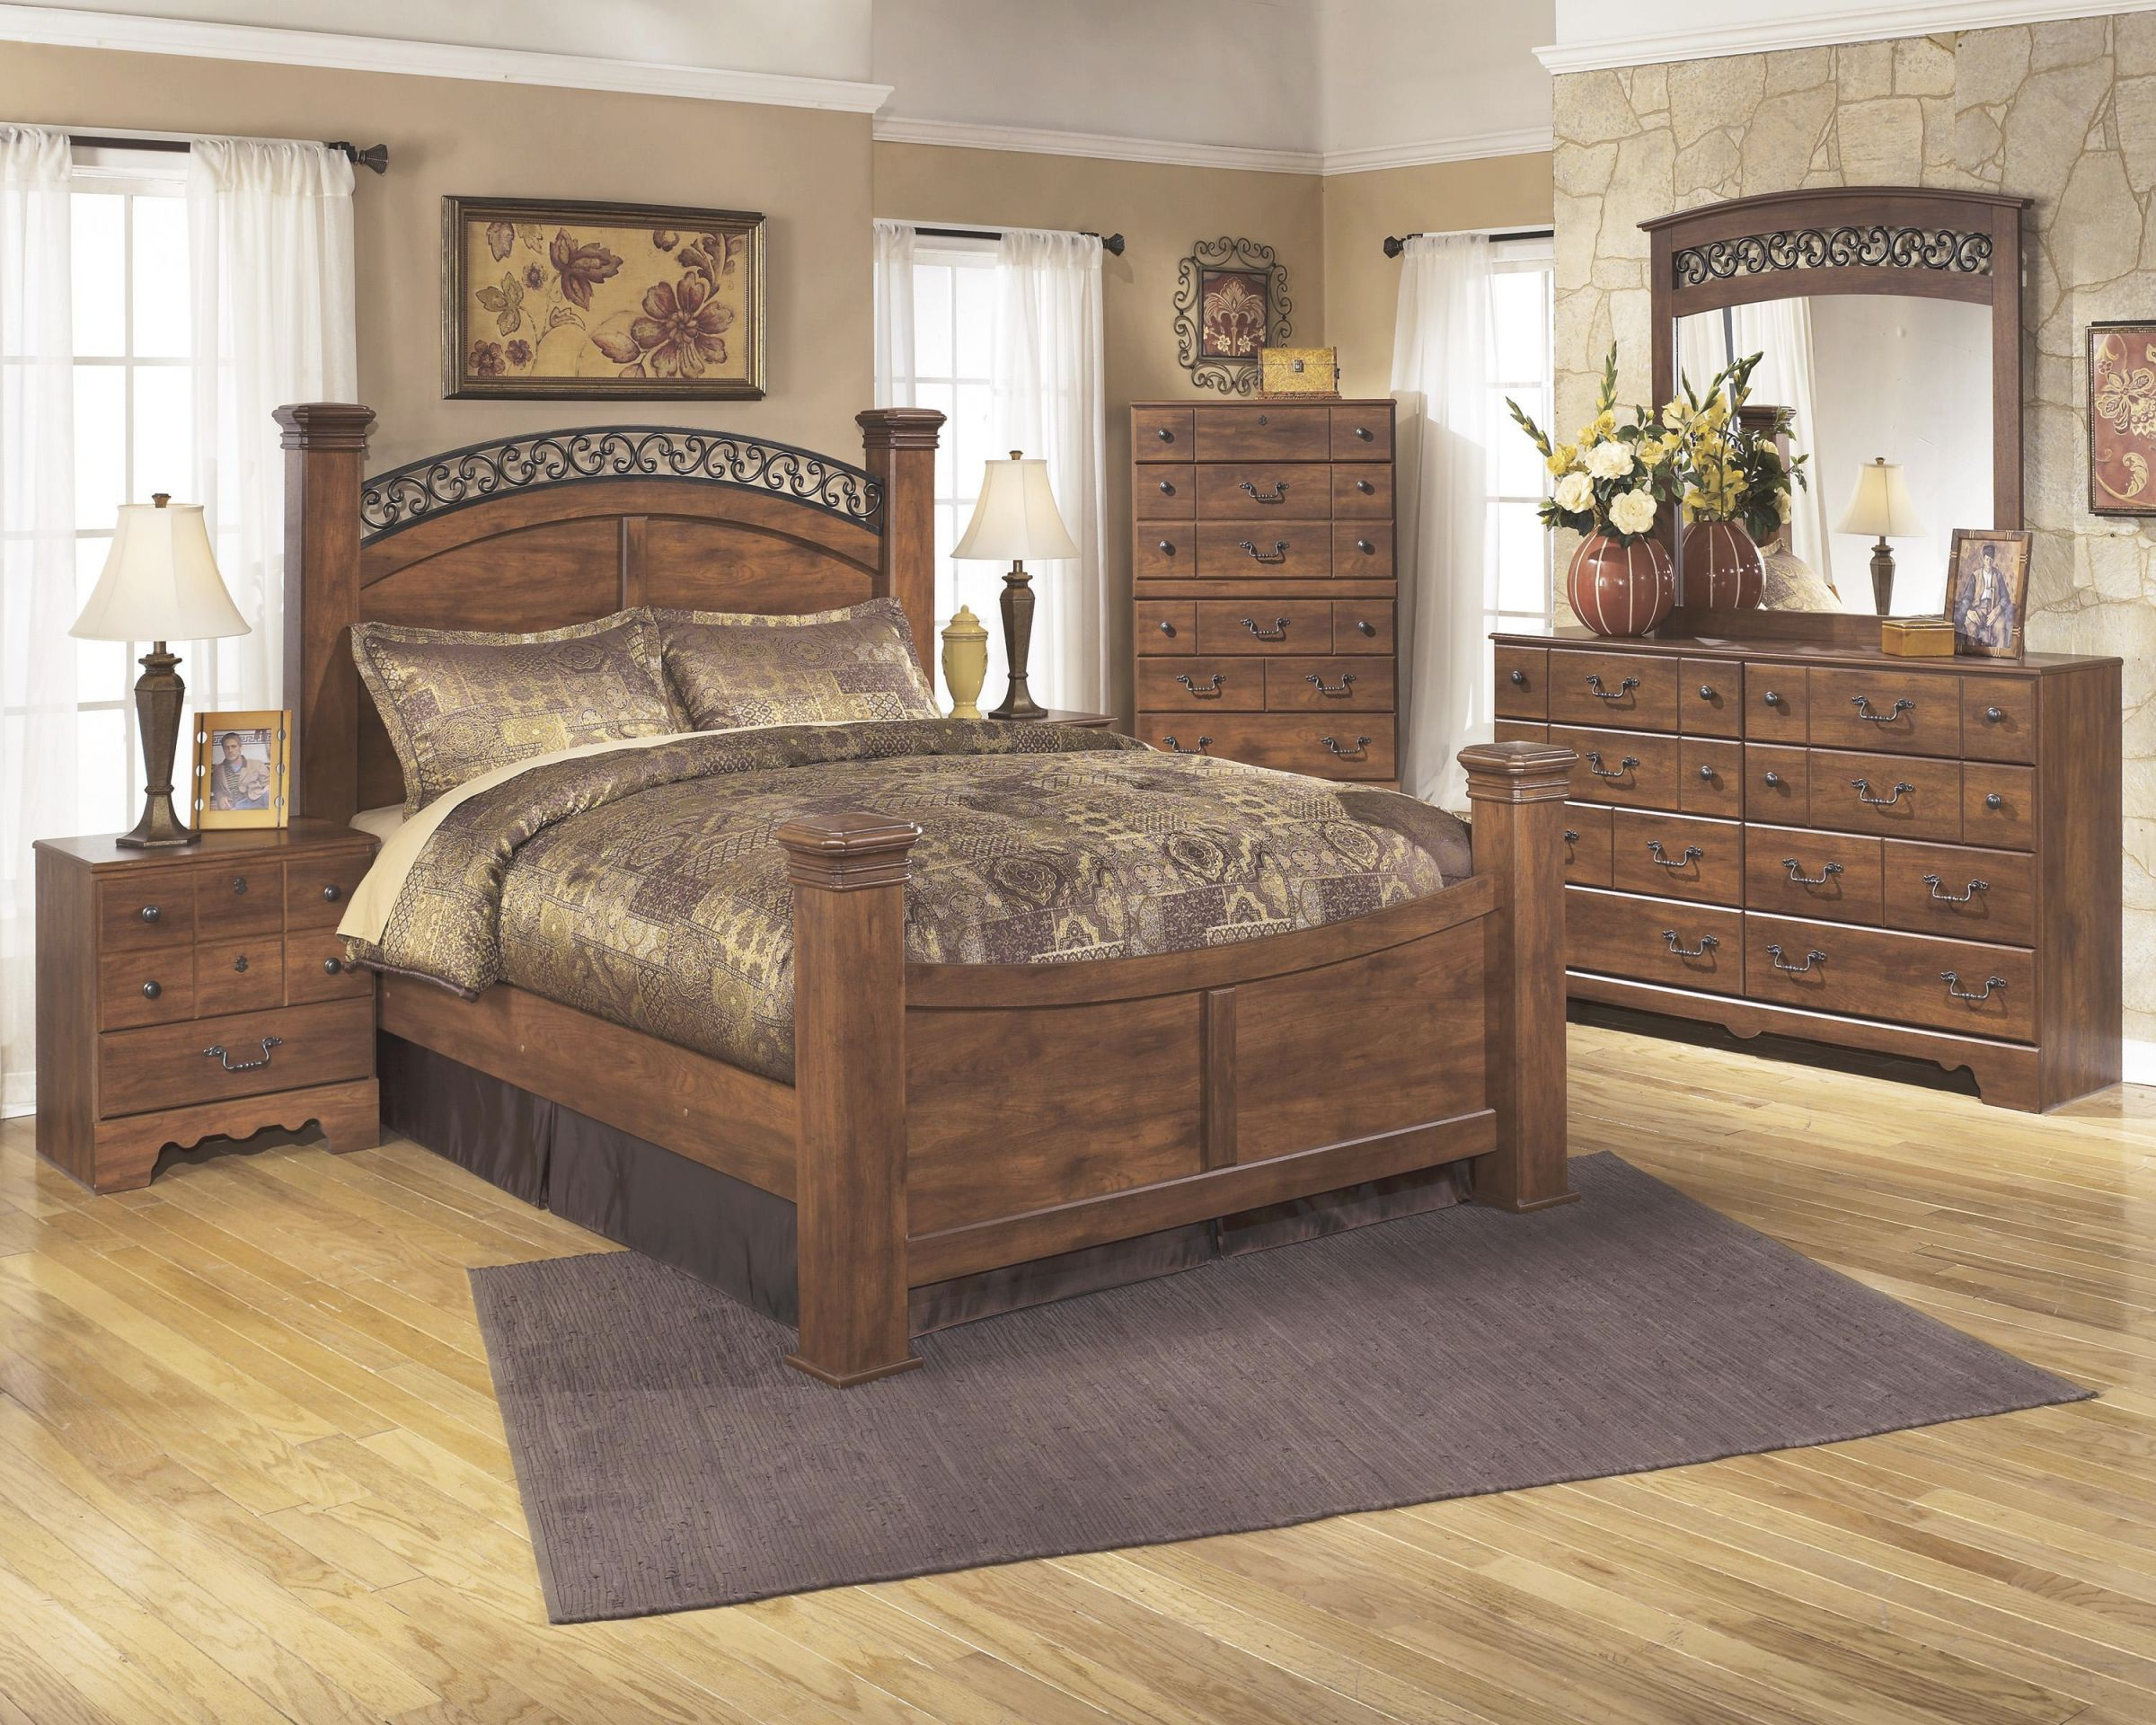 Timberline Queen Bedroom Group 4Pc Setdel Sol As At Del Sol Furniture inside Awesome Cheap Queen Bedroom Furniture Sets